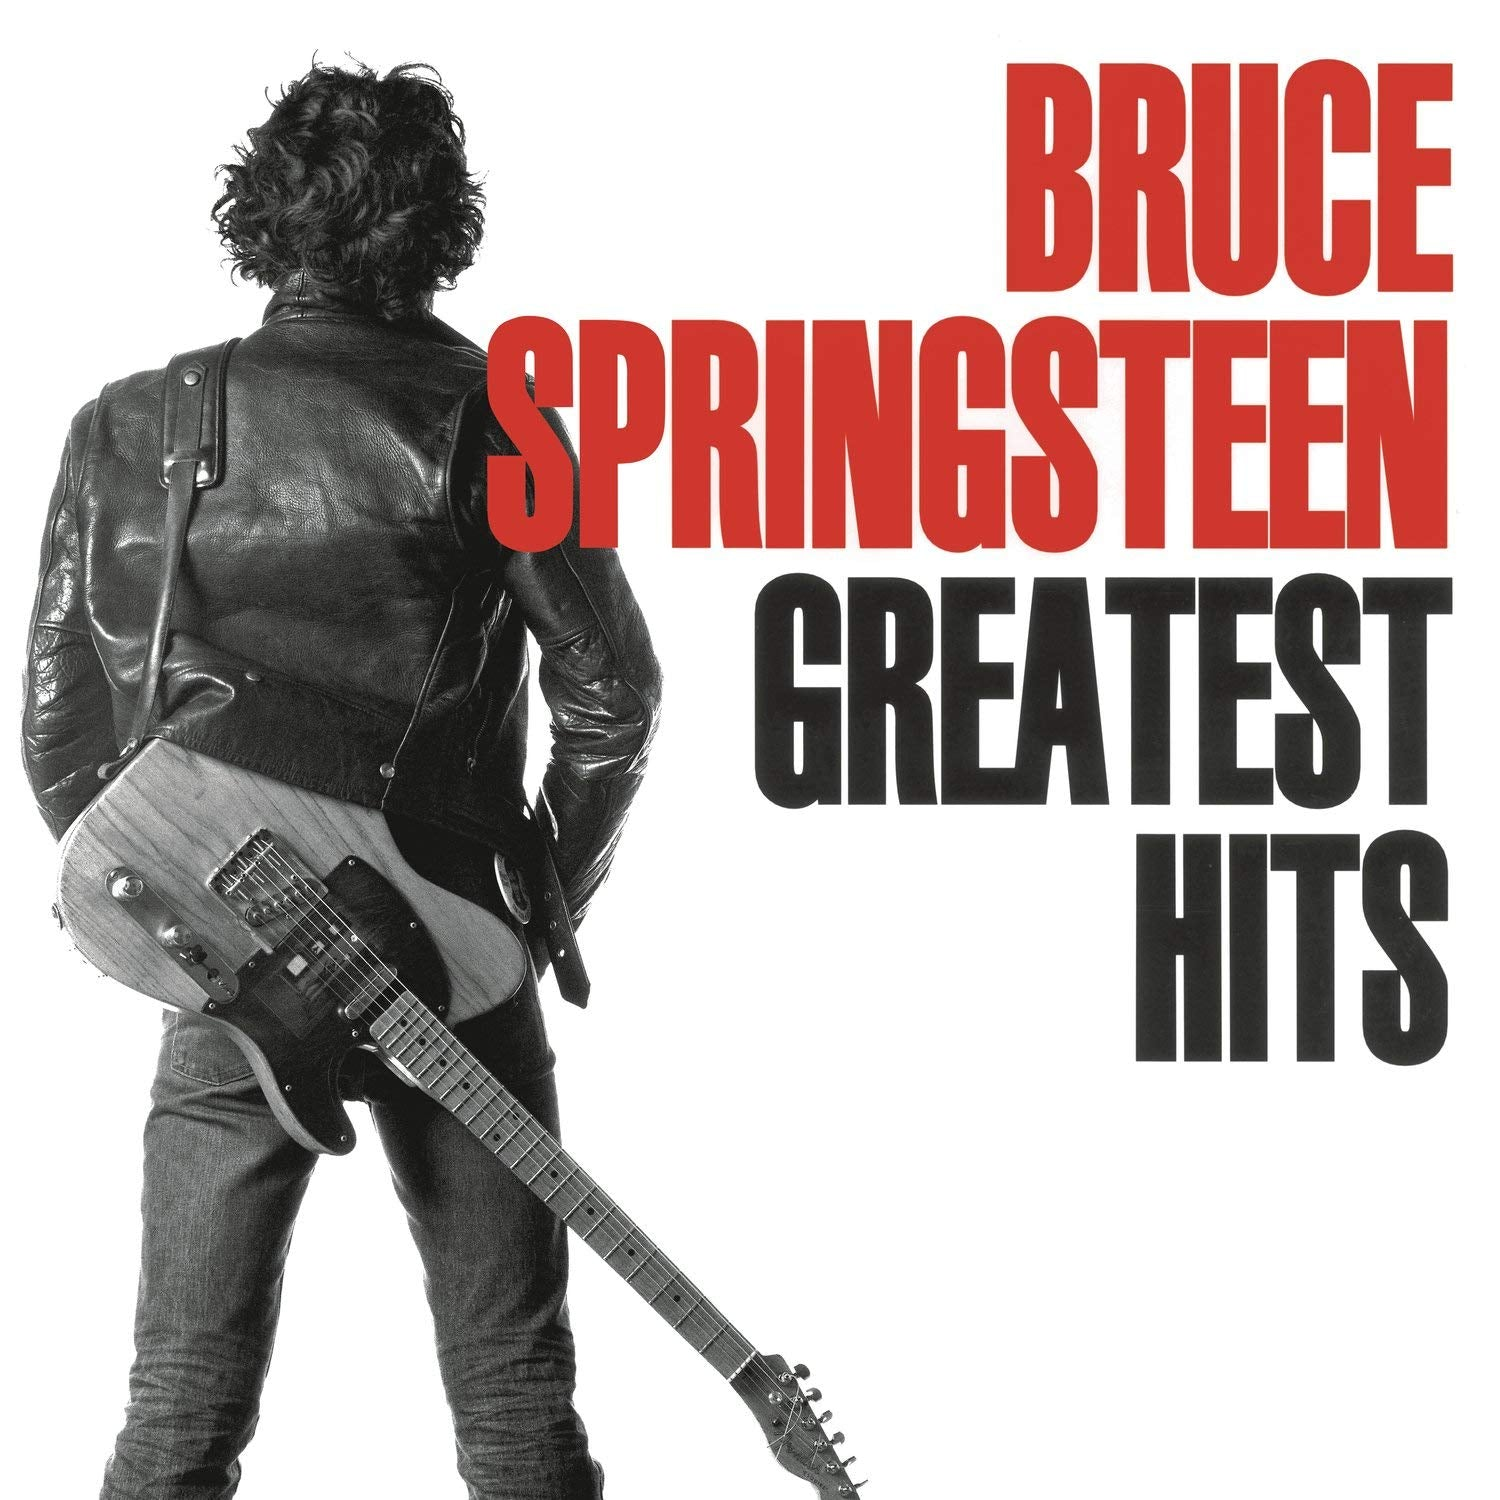 BRUCE SPRINGSTEEN - GREATEST HITS (2 LP) - Vinyl Sound